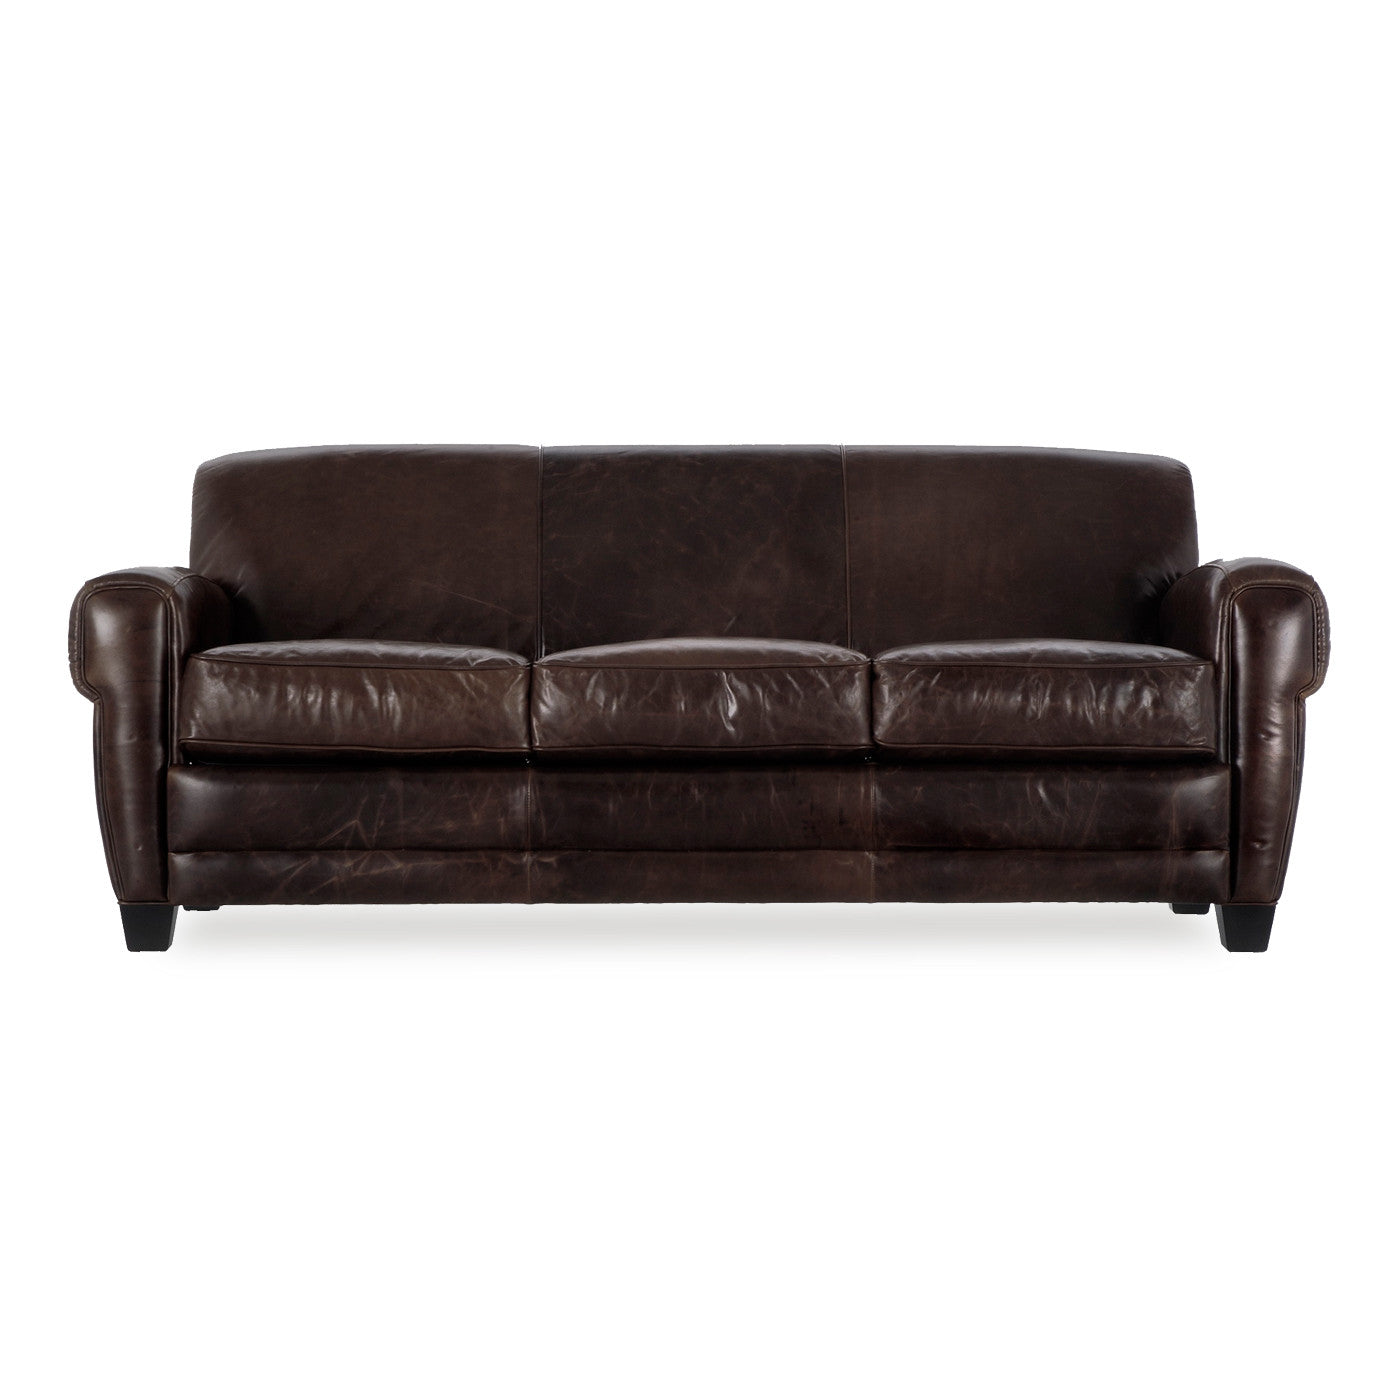 Cleon Leather Sofa BROWN